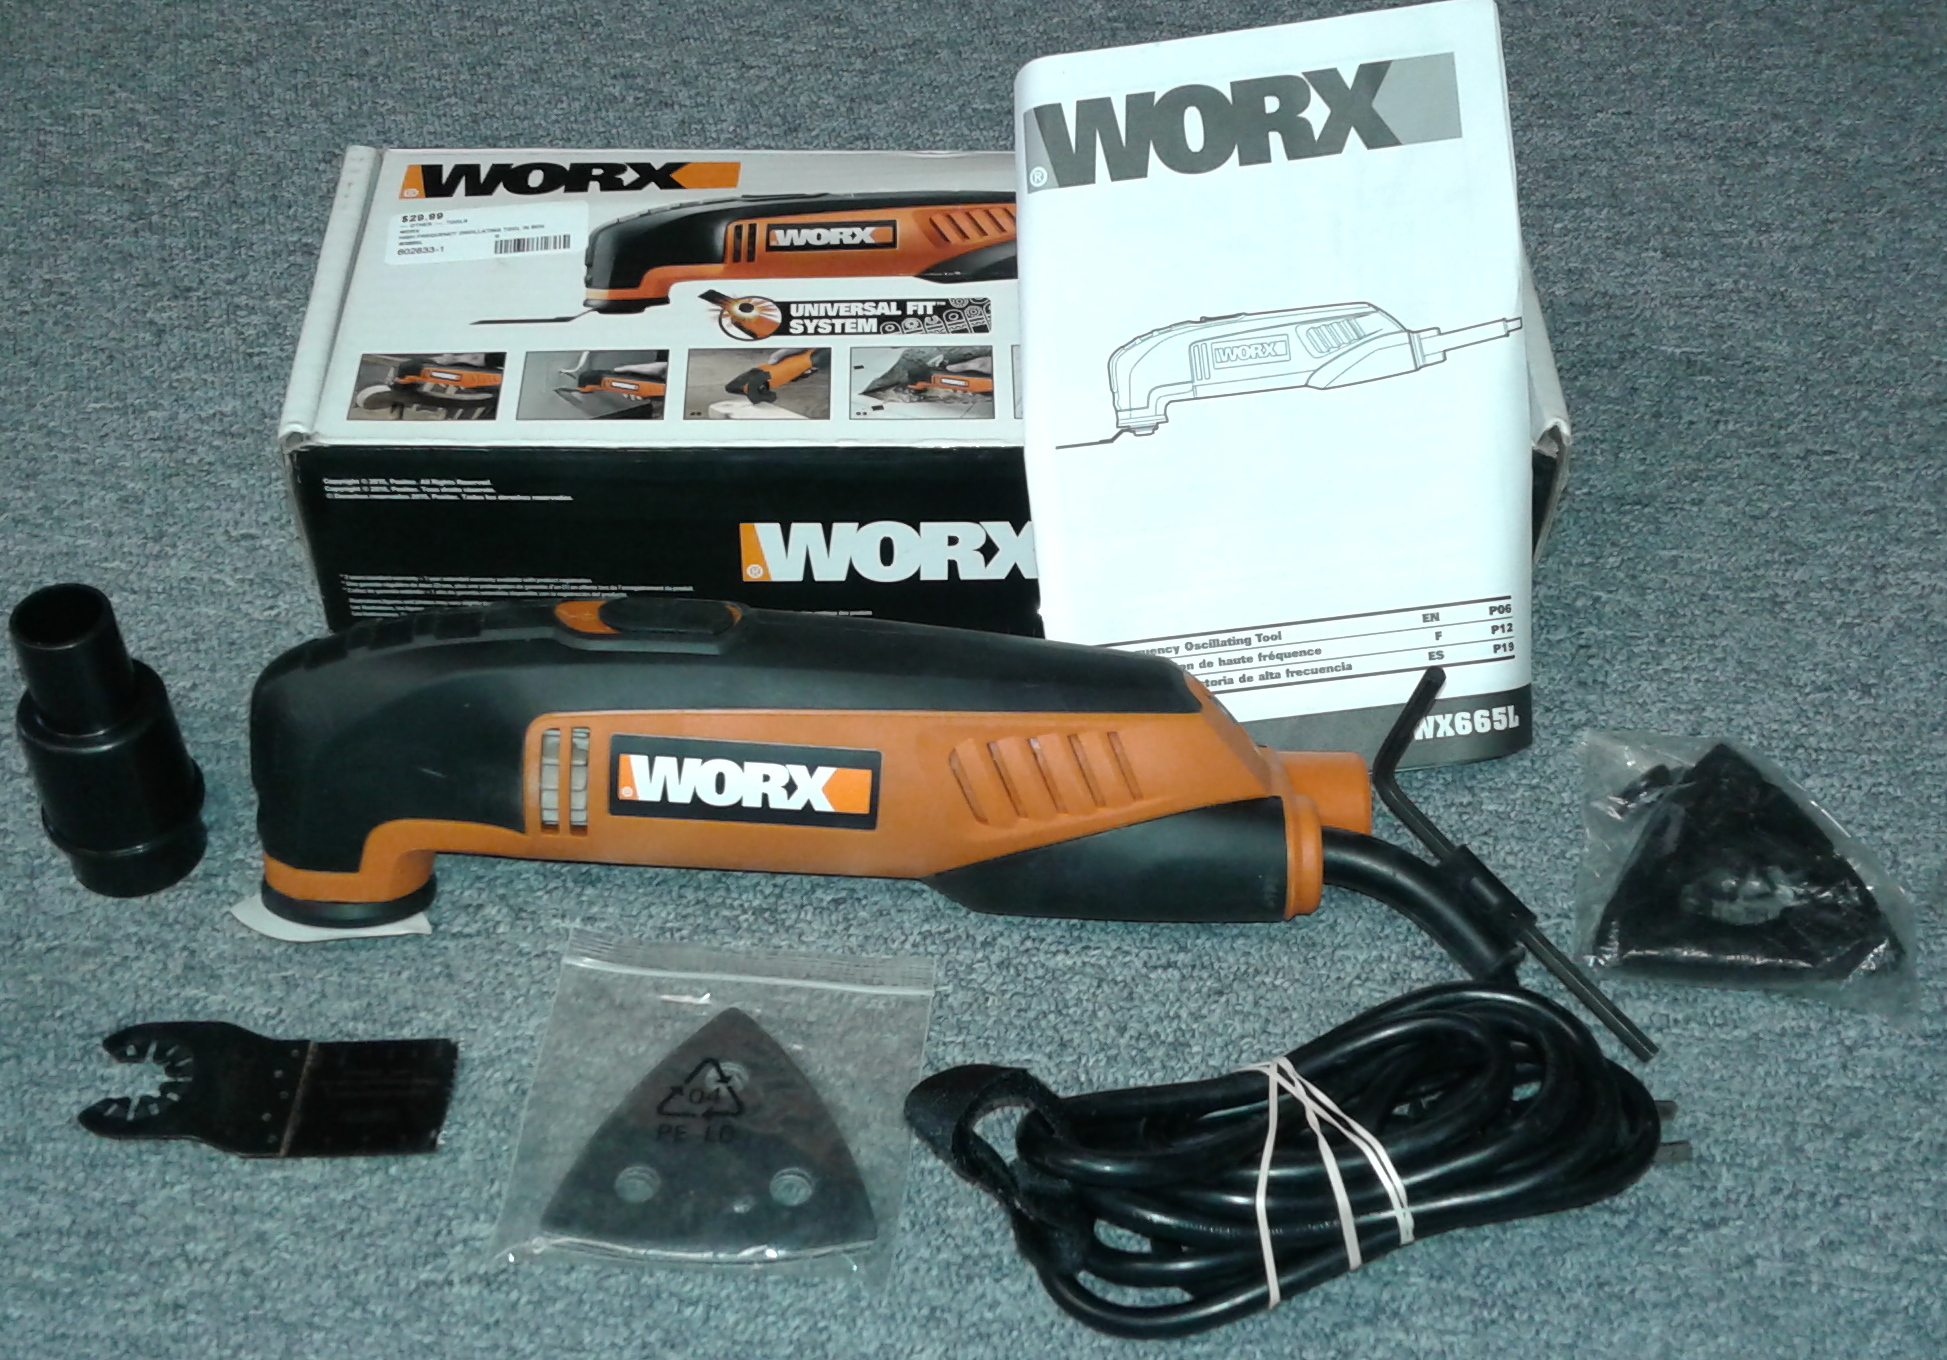 WORX HIGH FREQUENCY OSCILLATING TOOL WX665L